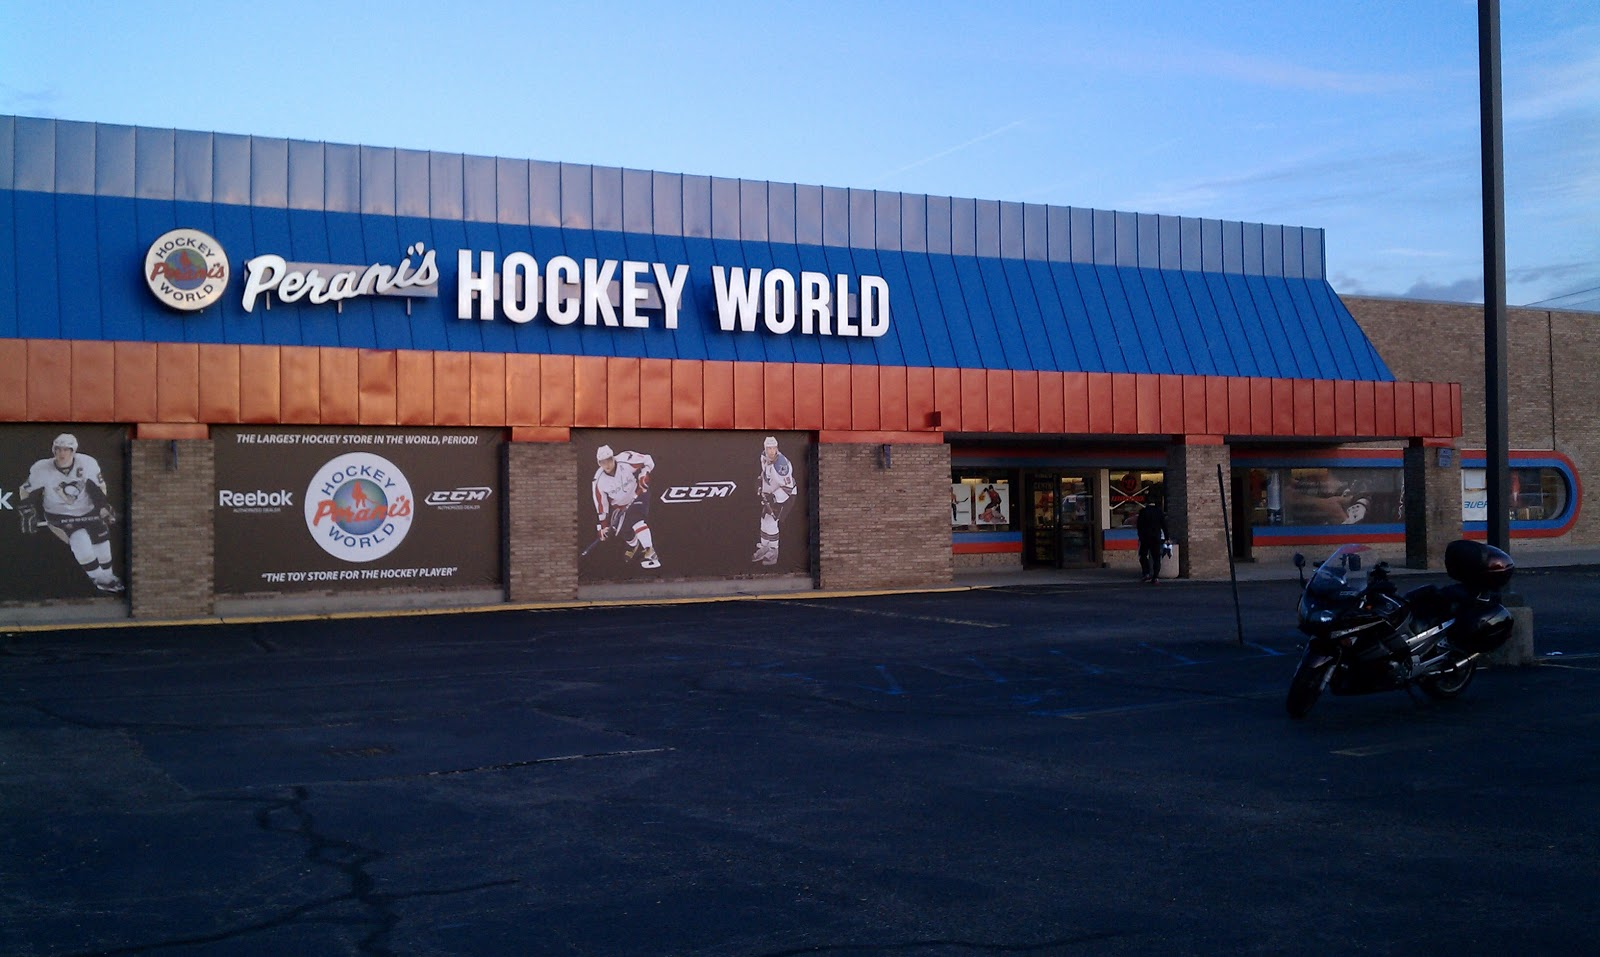 for being the world s largest hockey store it s fitting that it occupies an old toys r us building it makes up for its lack of nostalgic material by its